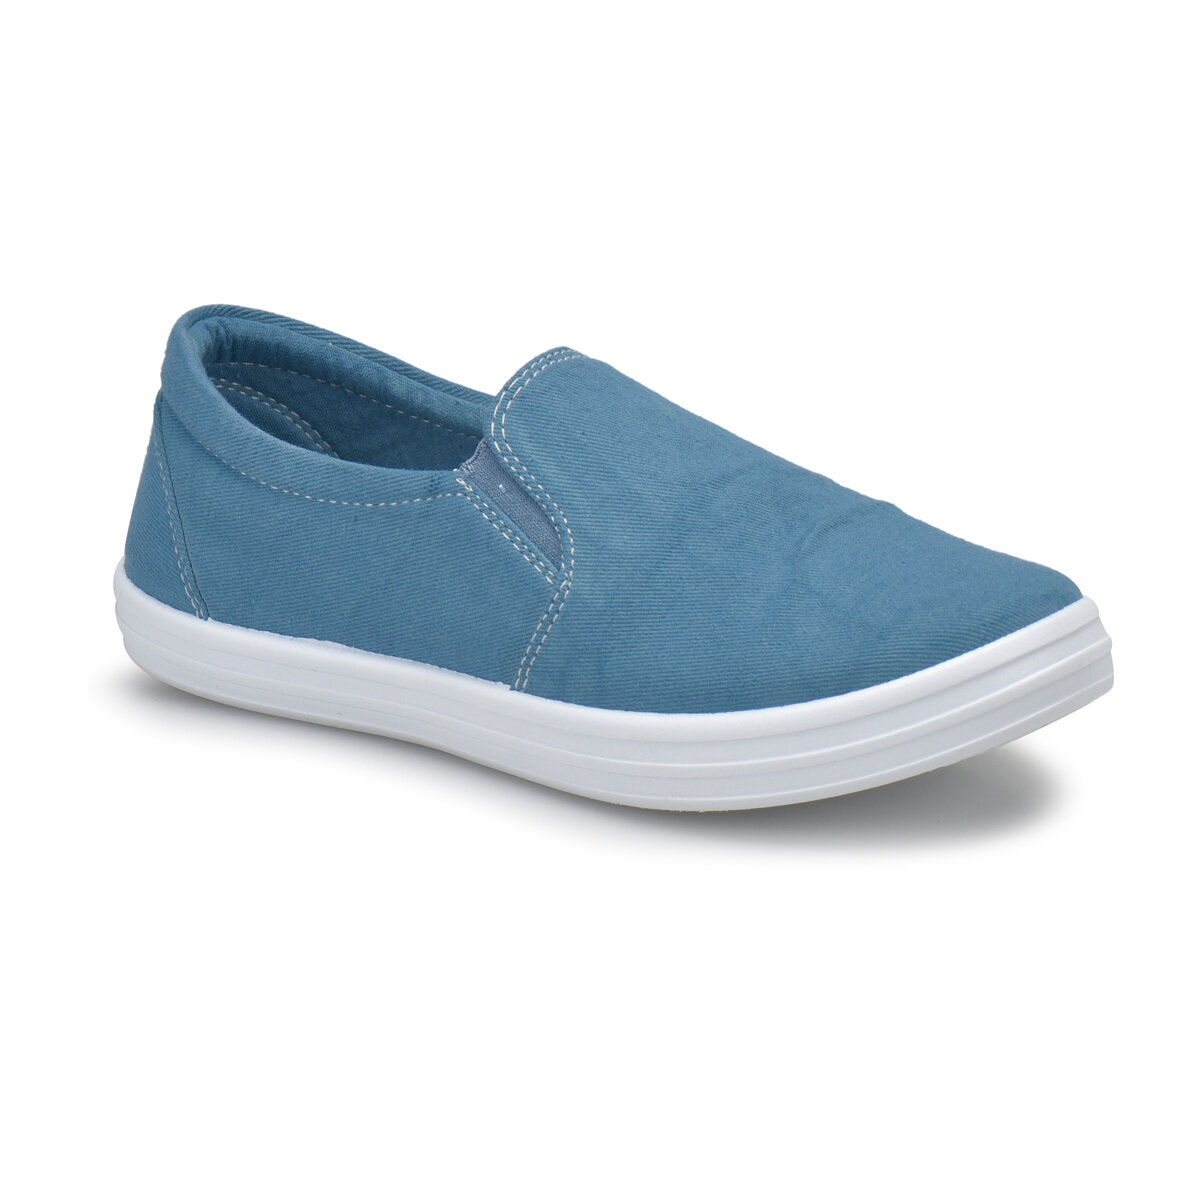 FLO 71.354926.Z Blue Women 'S Slip On Shoes Polaris